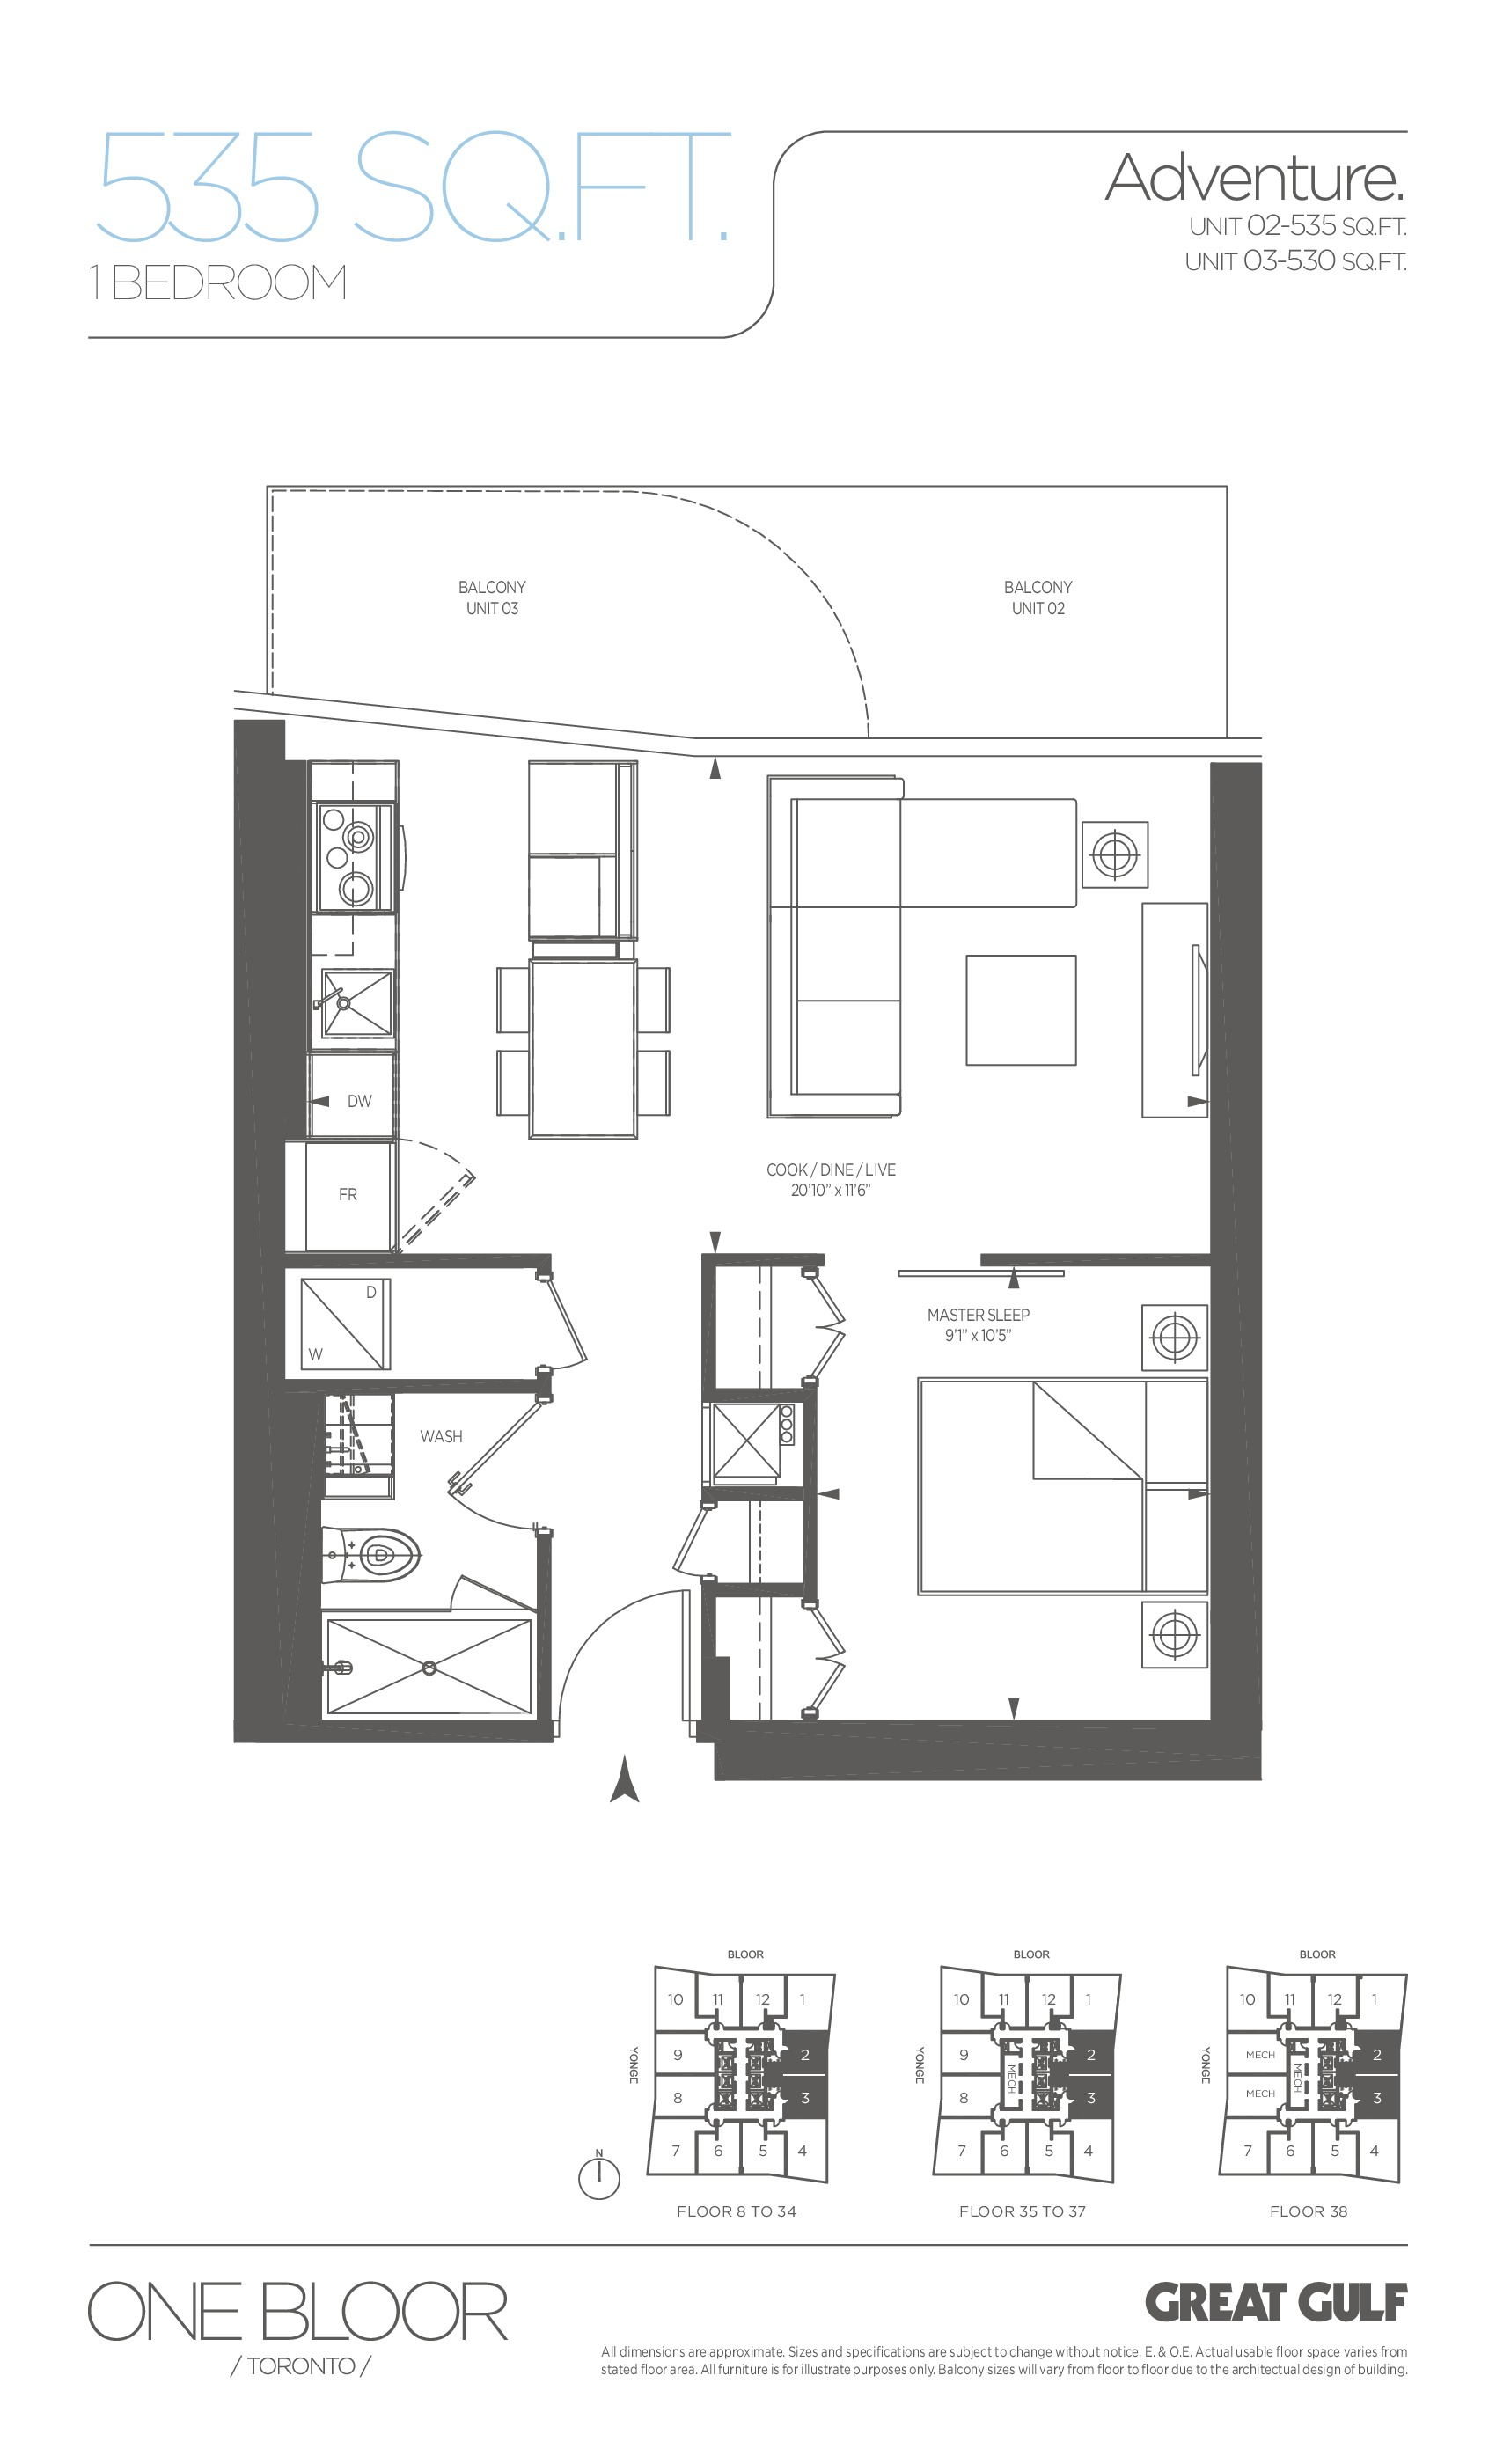 Adventure Floor Plan at One Bloor Condos - 535 sq.ft